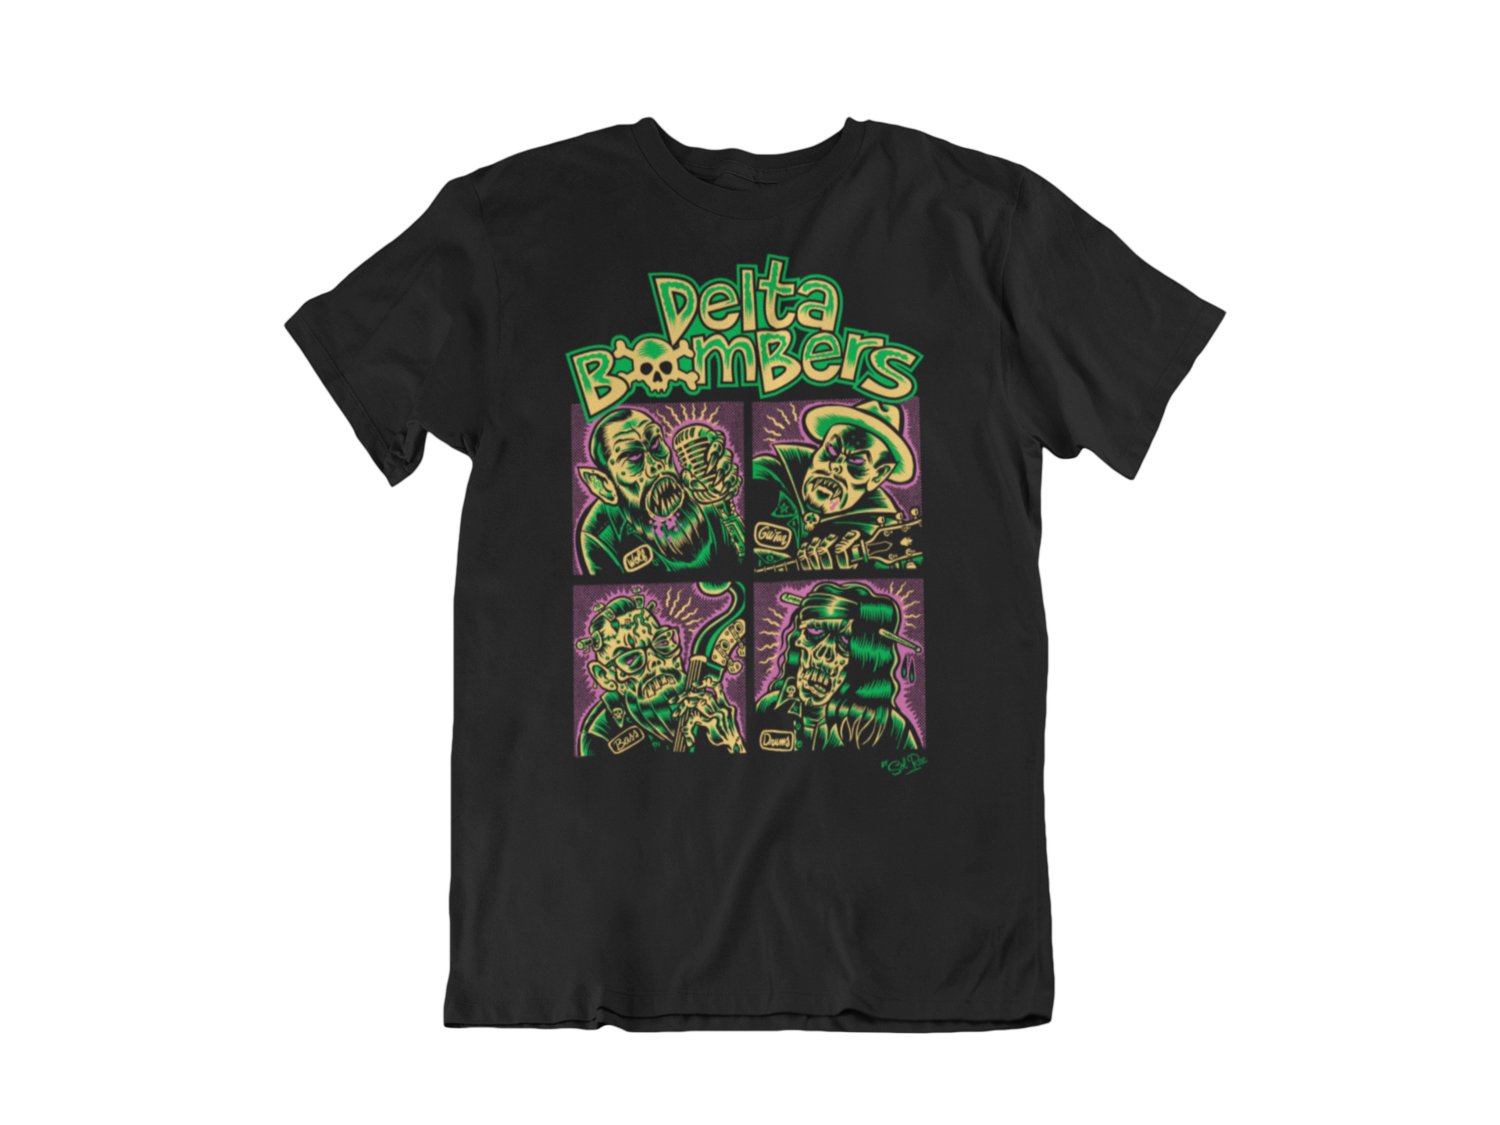 "THE DELTA BOMBERS T-SHIRT ""BOMBER BUNCH"" for MEN"